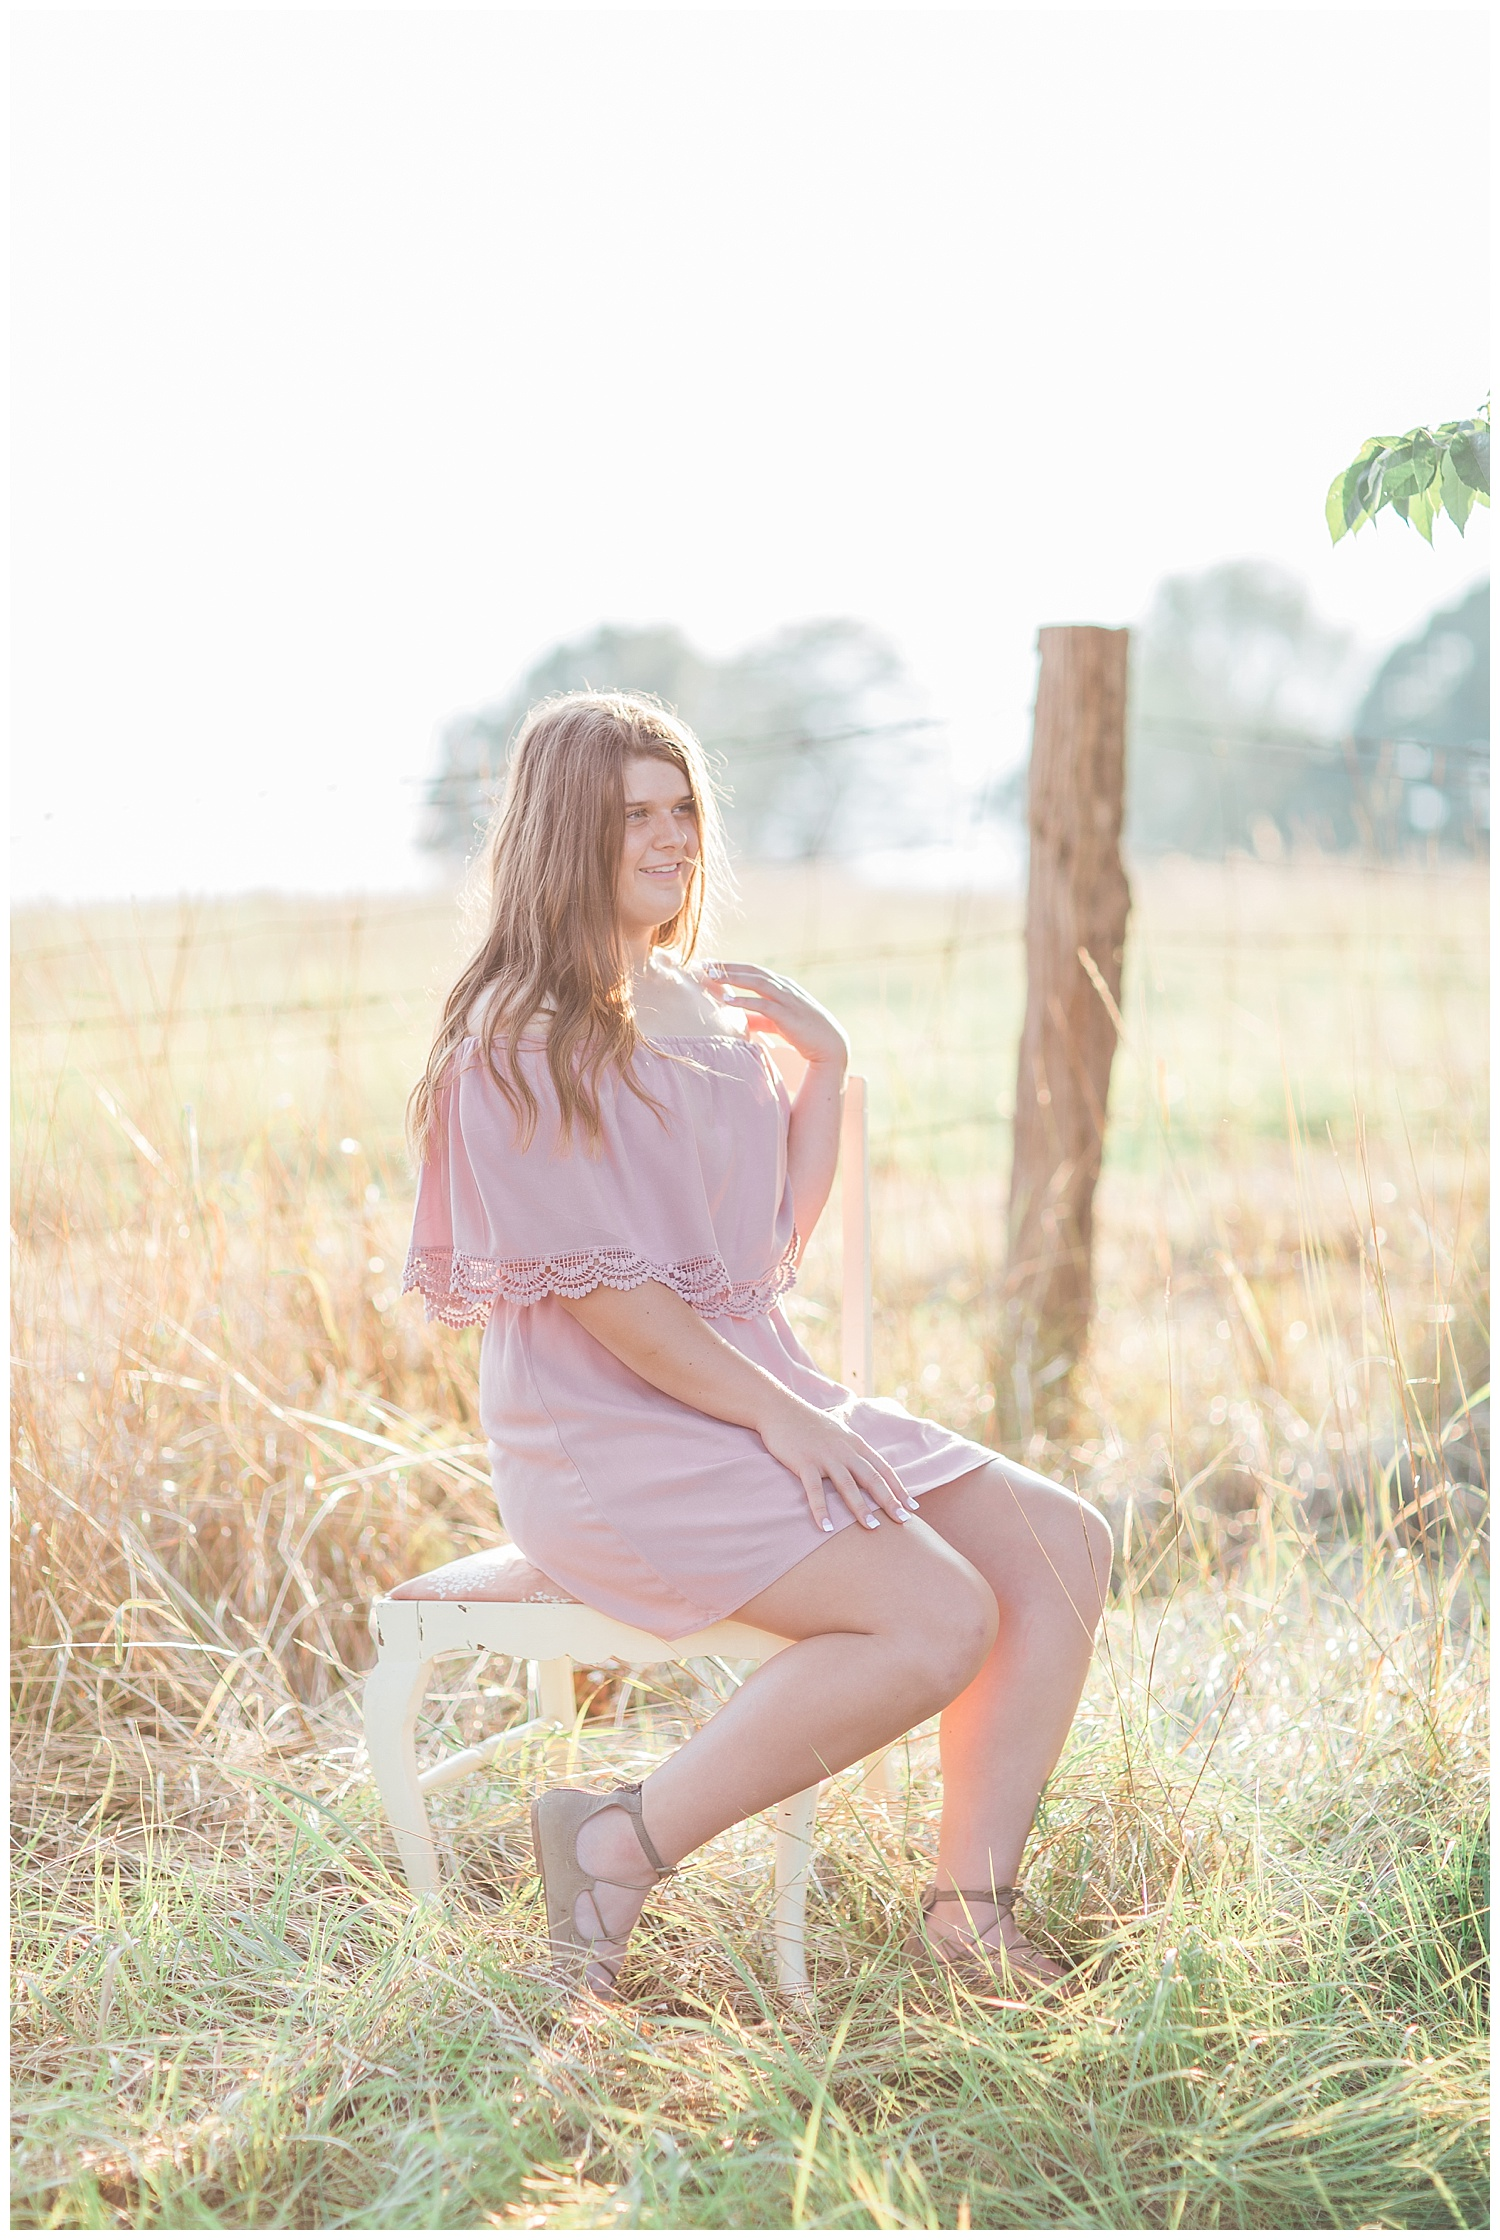 Maddy Mount Morris Class Of 2018 Senior Whimsy Roots Photography